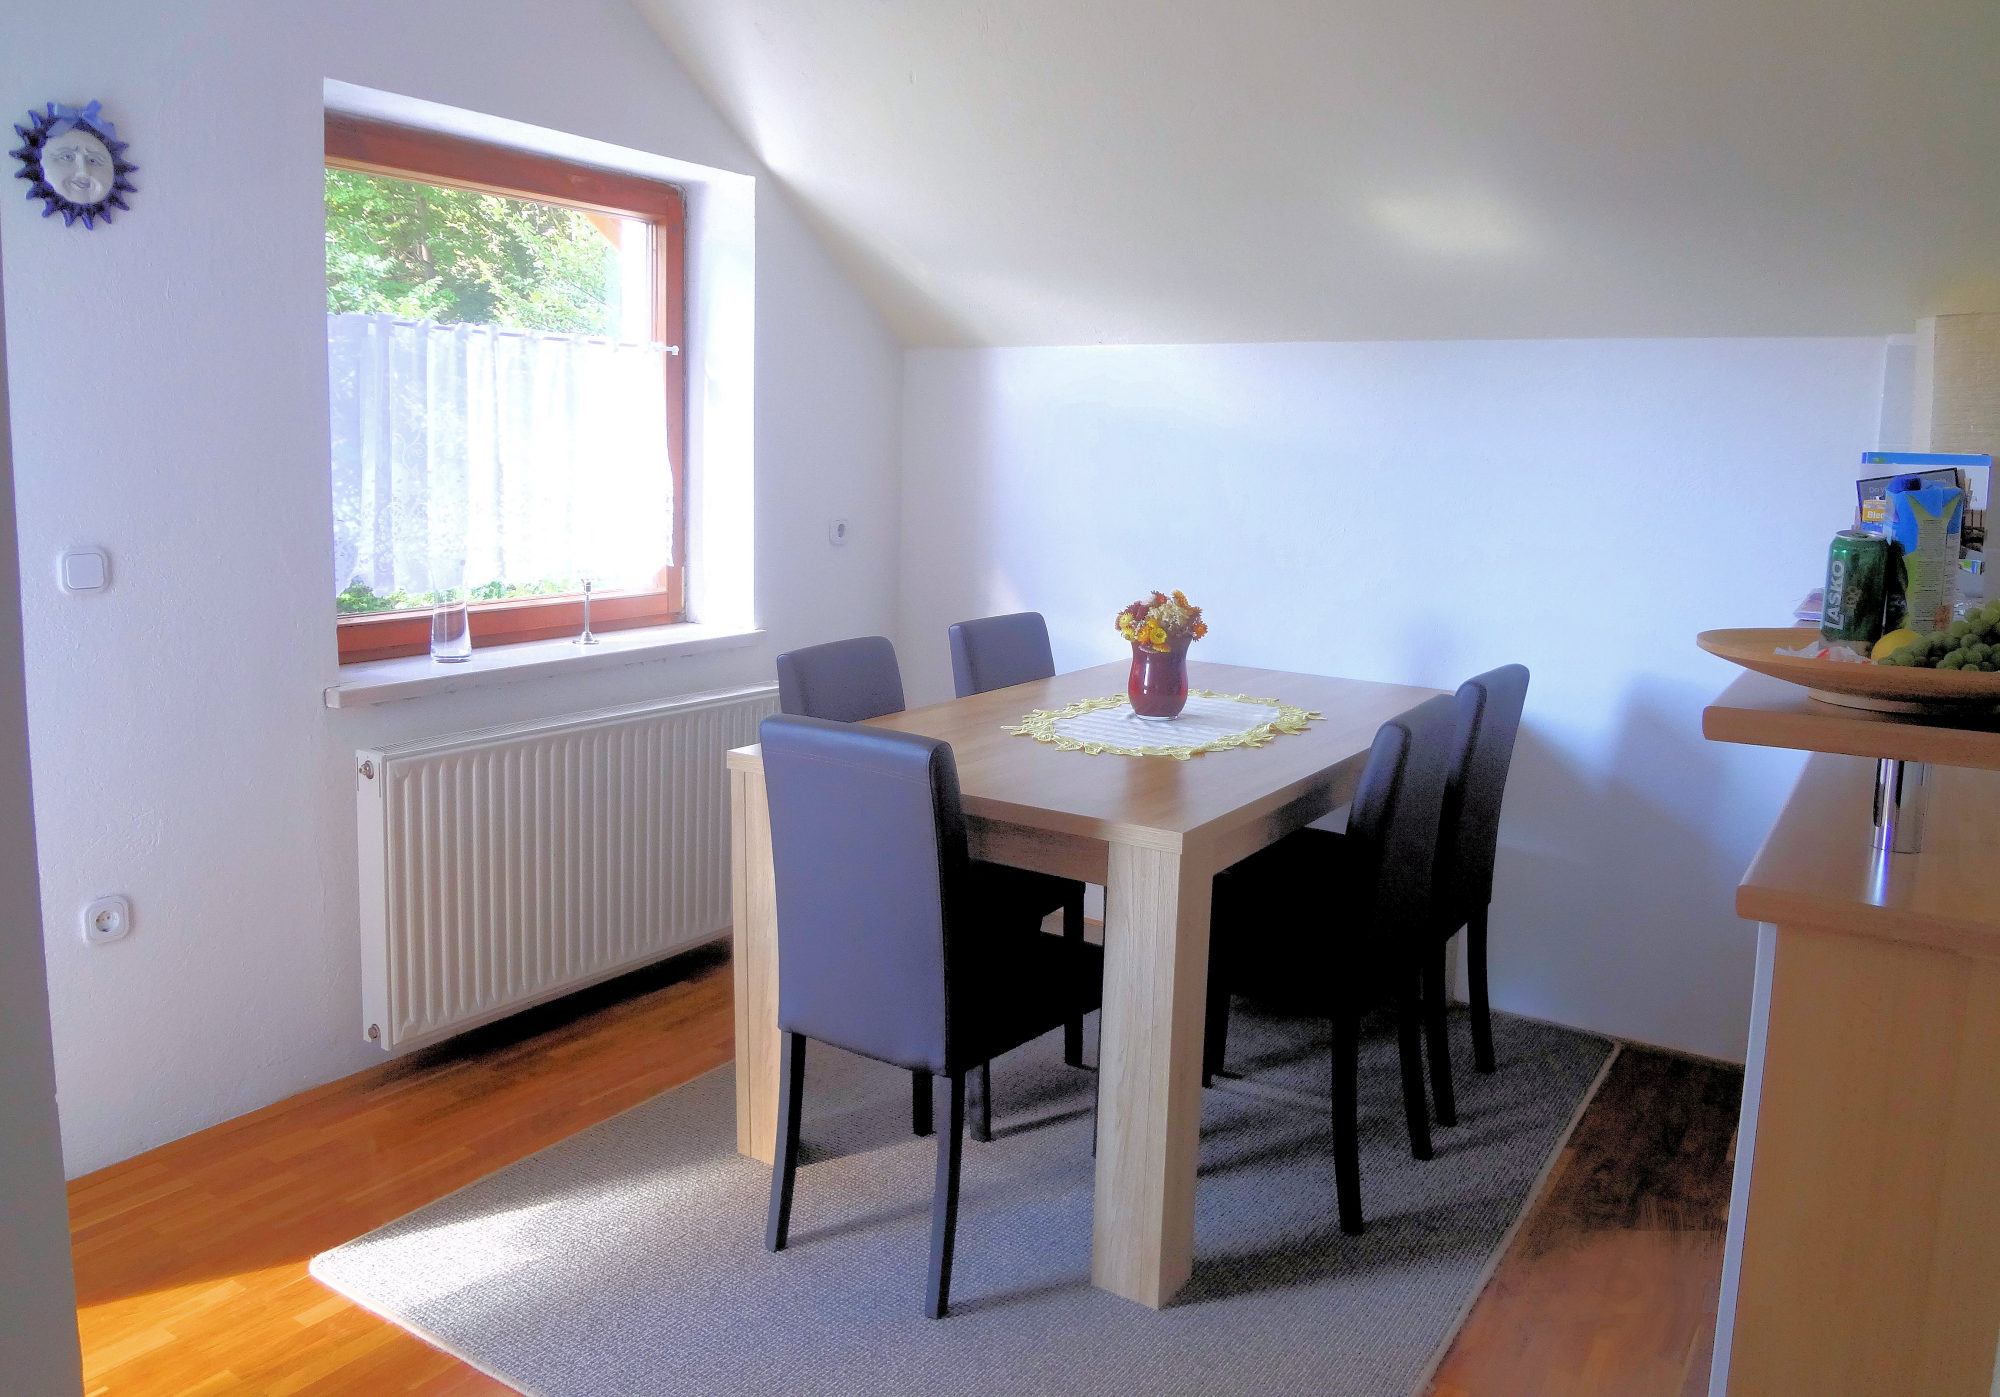 A dinning table in the dinning area of Apartments Fine Stay in the Bled area of Slovenia